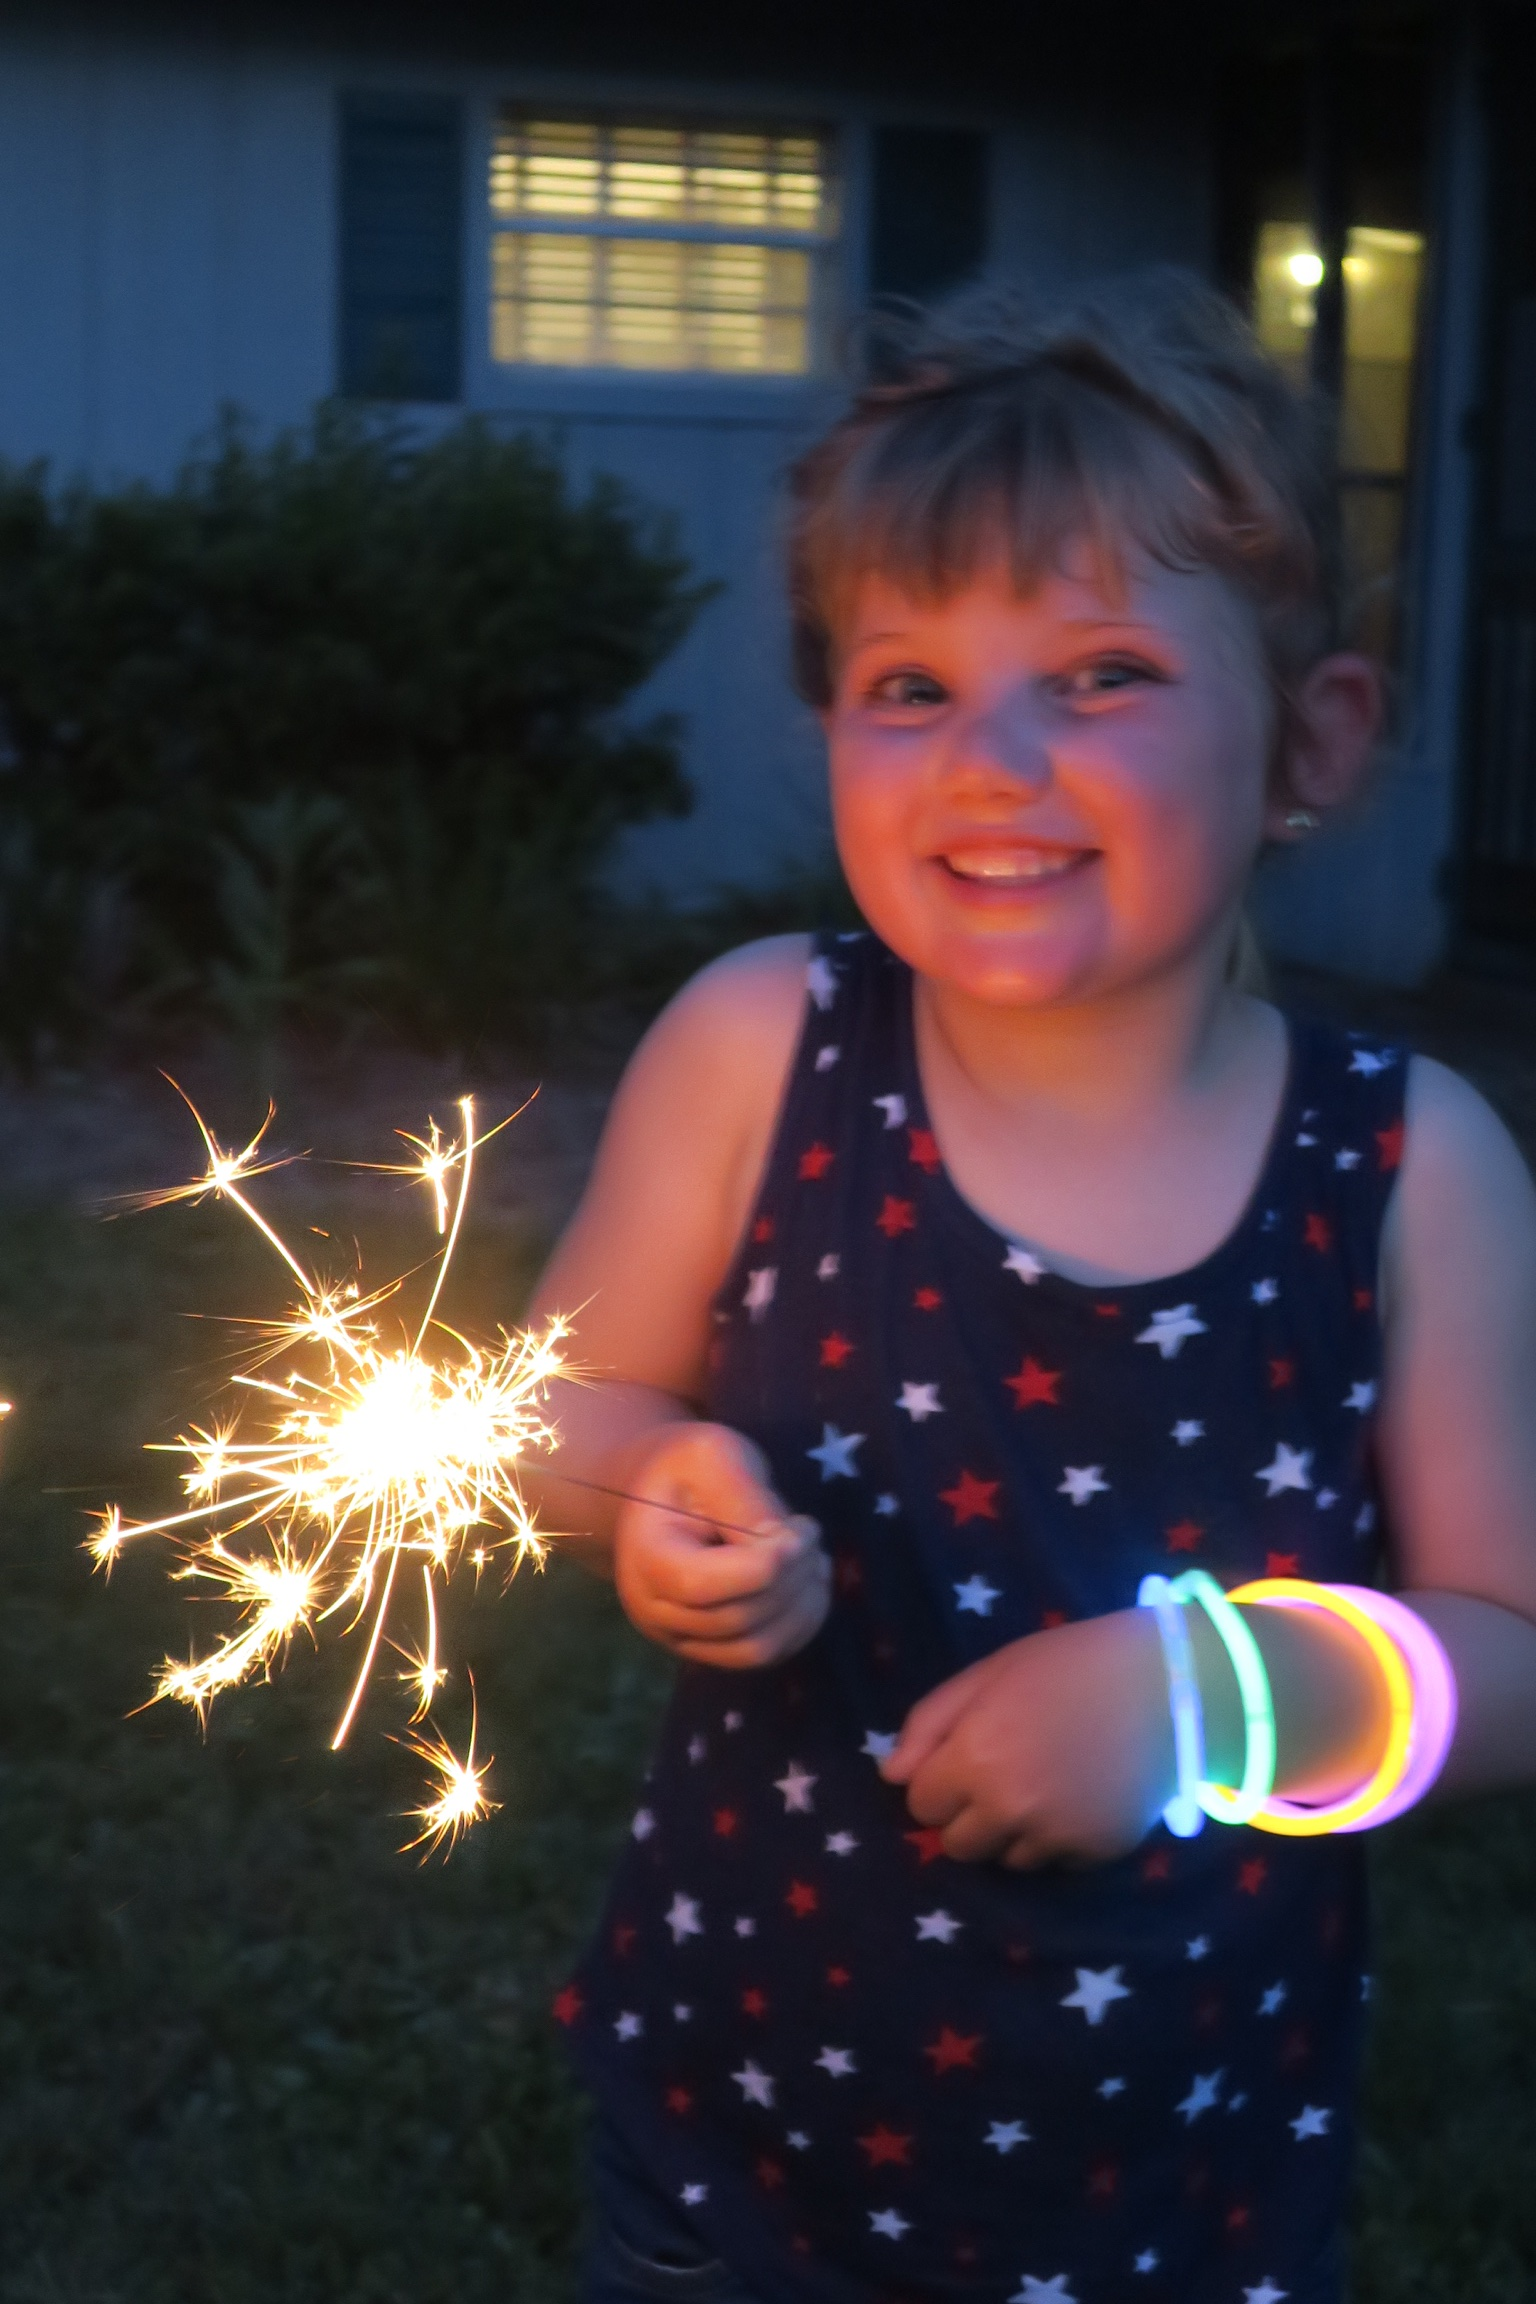 Sparklers for the 4th!